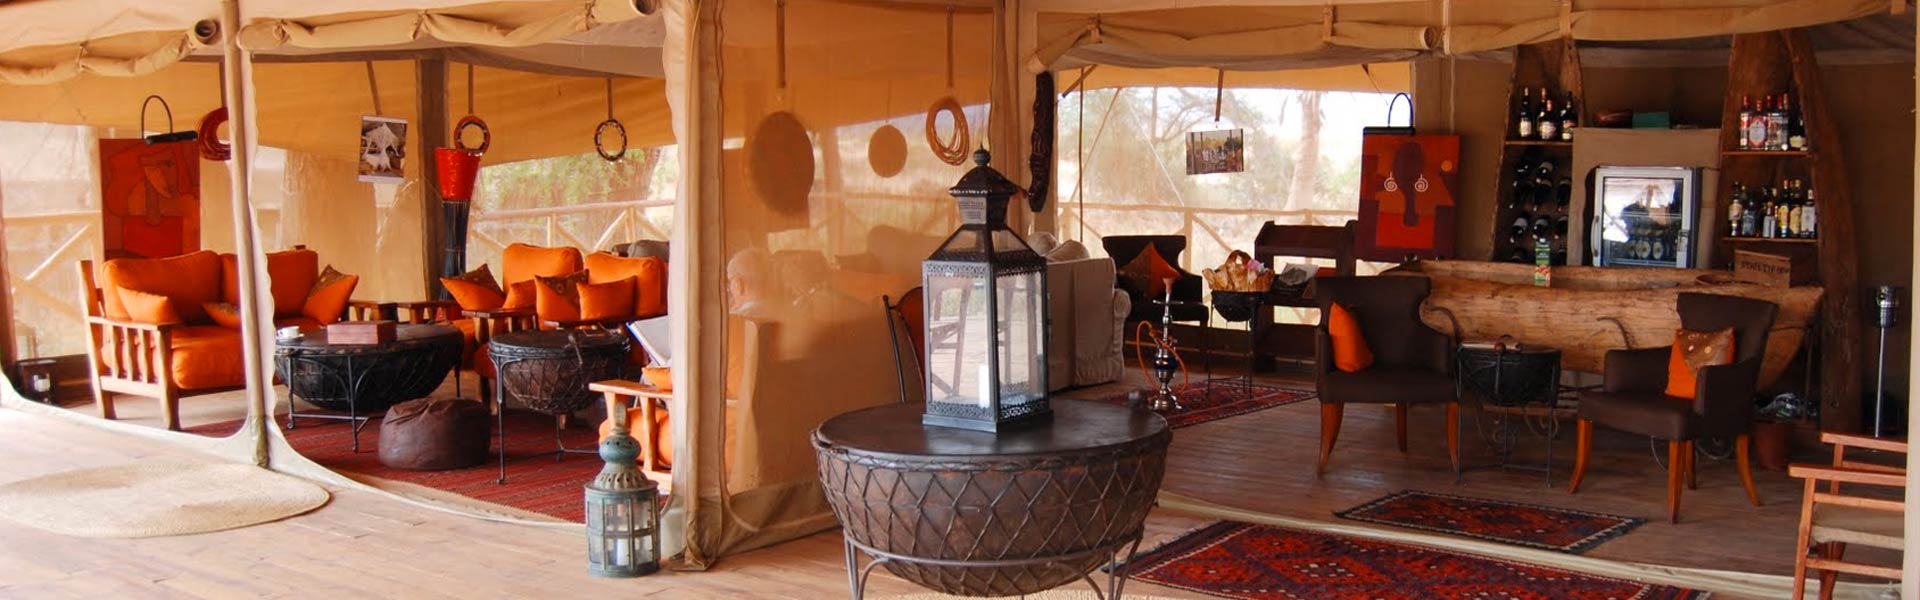 Kenya escapes safari luxury tented lounge